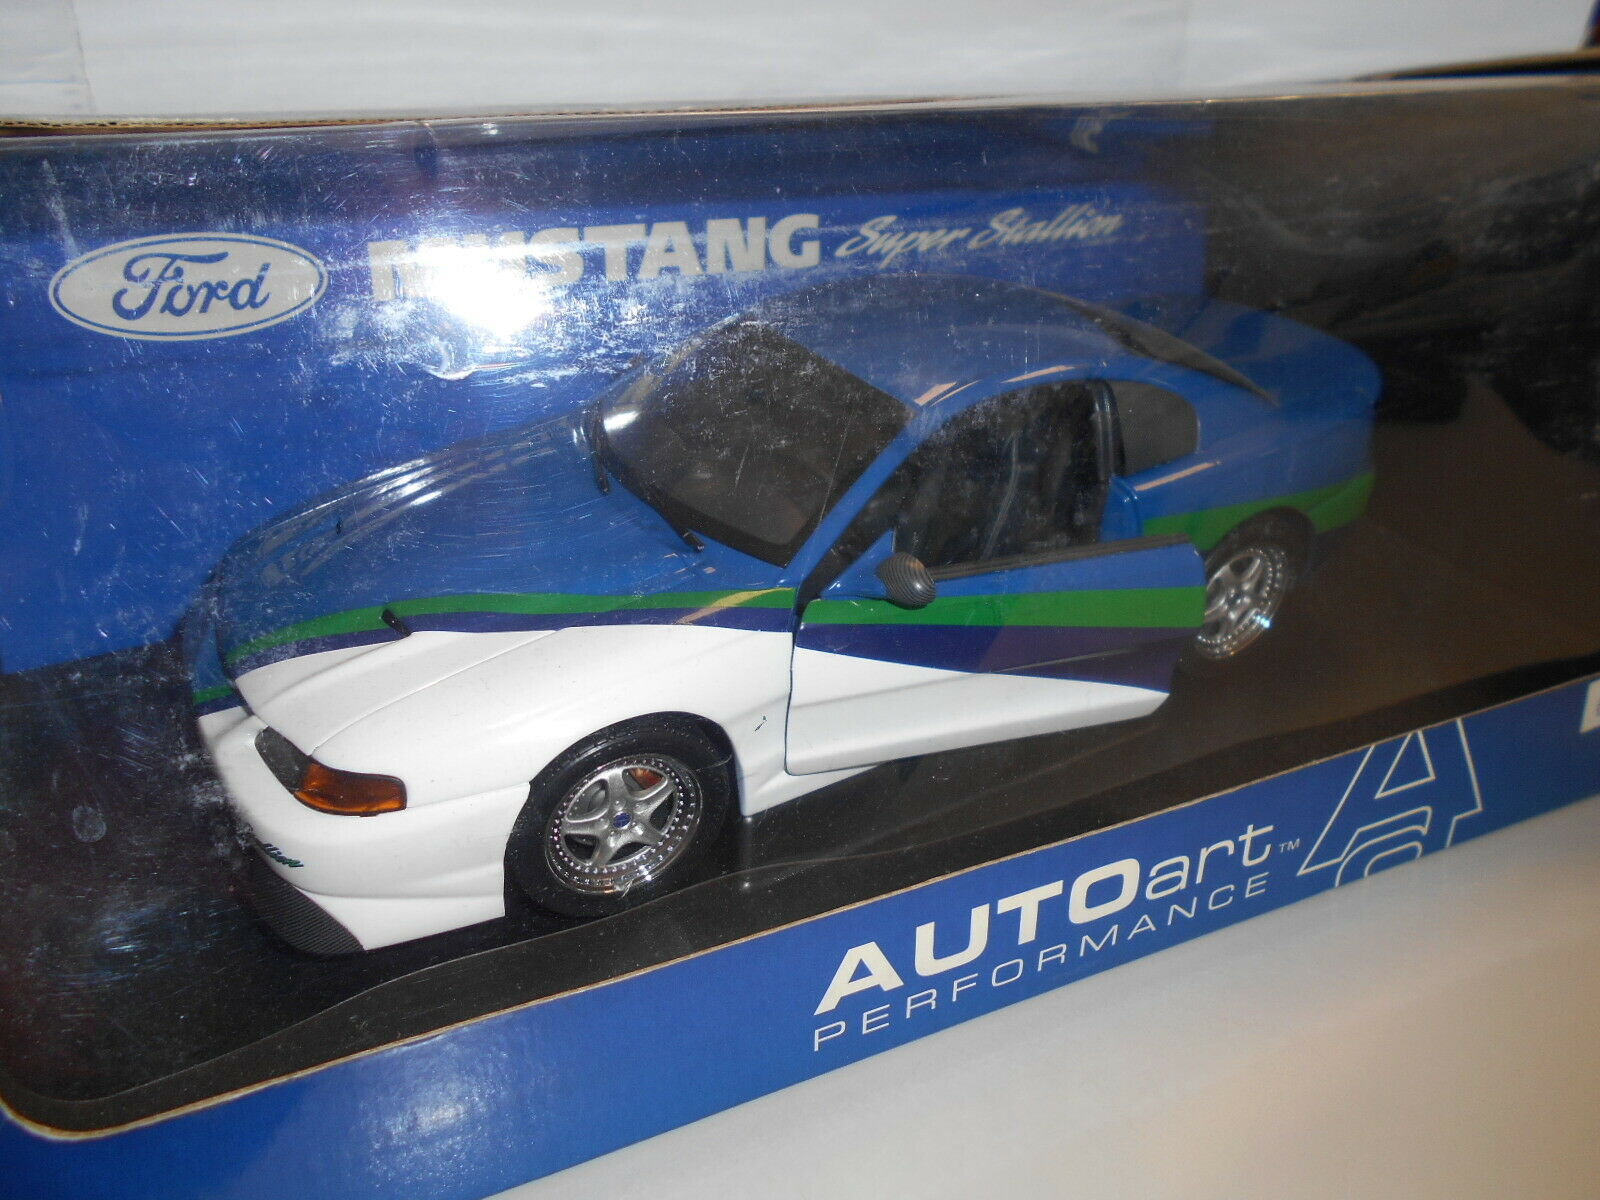 AA72710 by AUTOART FORD MUSTANG SUPER STALLION 1 18